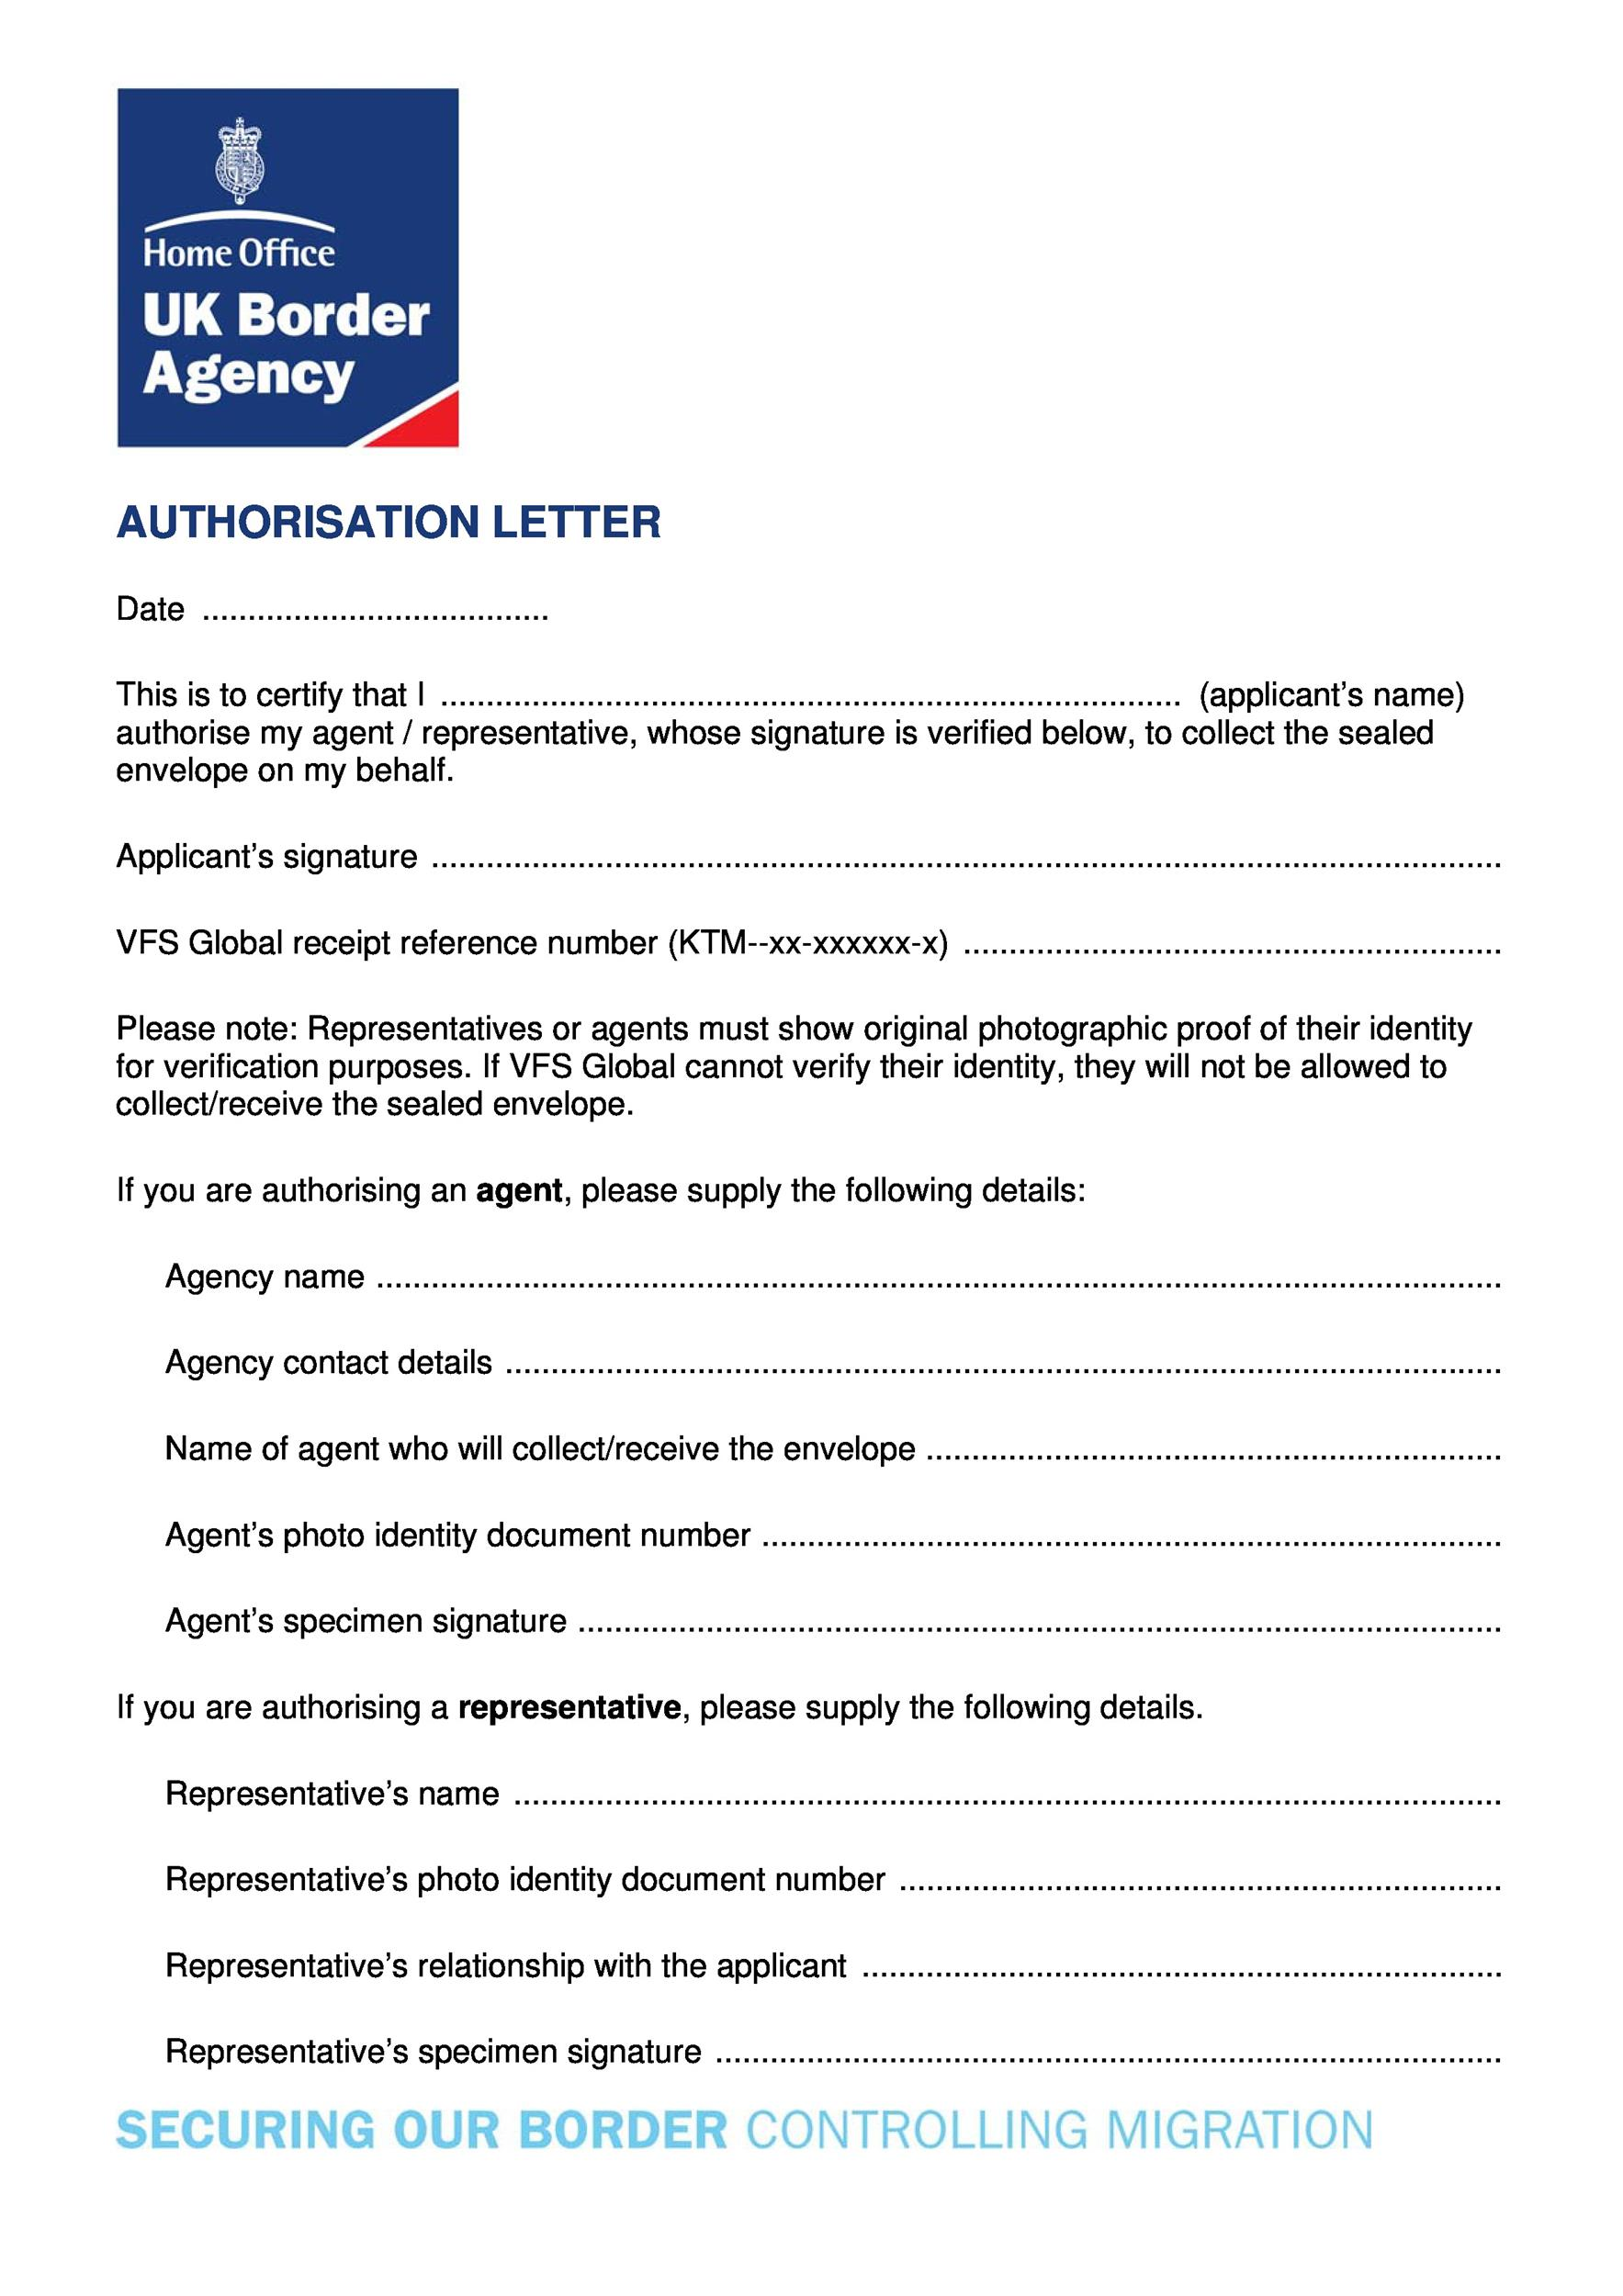 46 Authorization Letter Samples  Templates - Template Lab